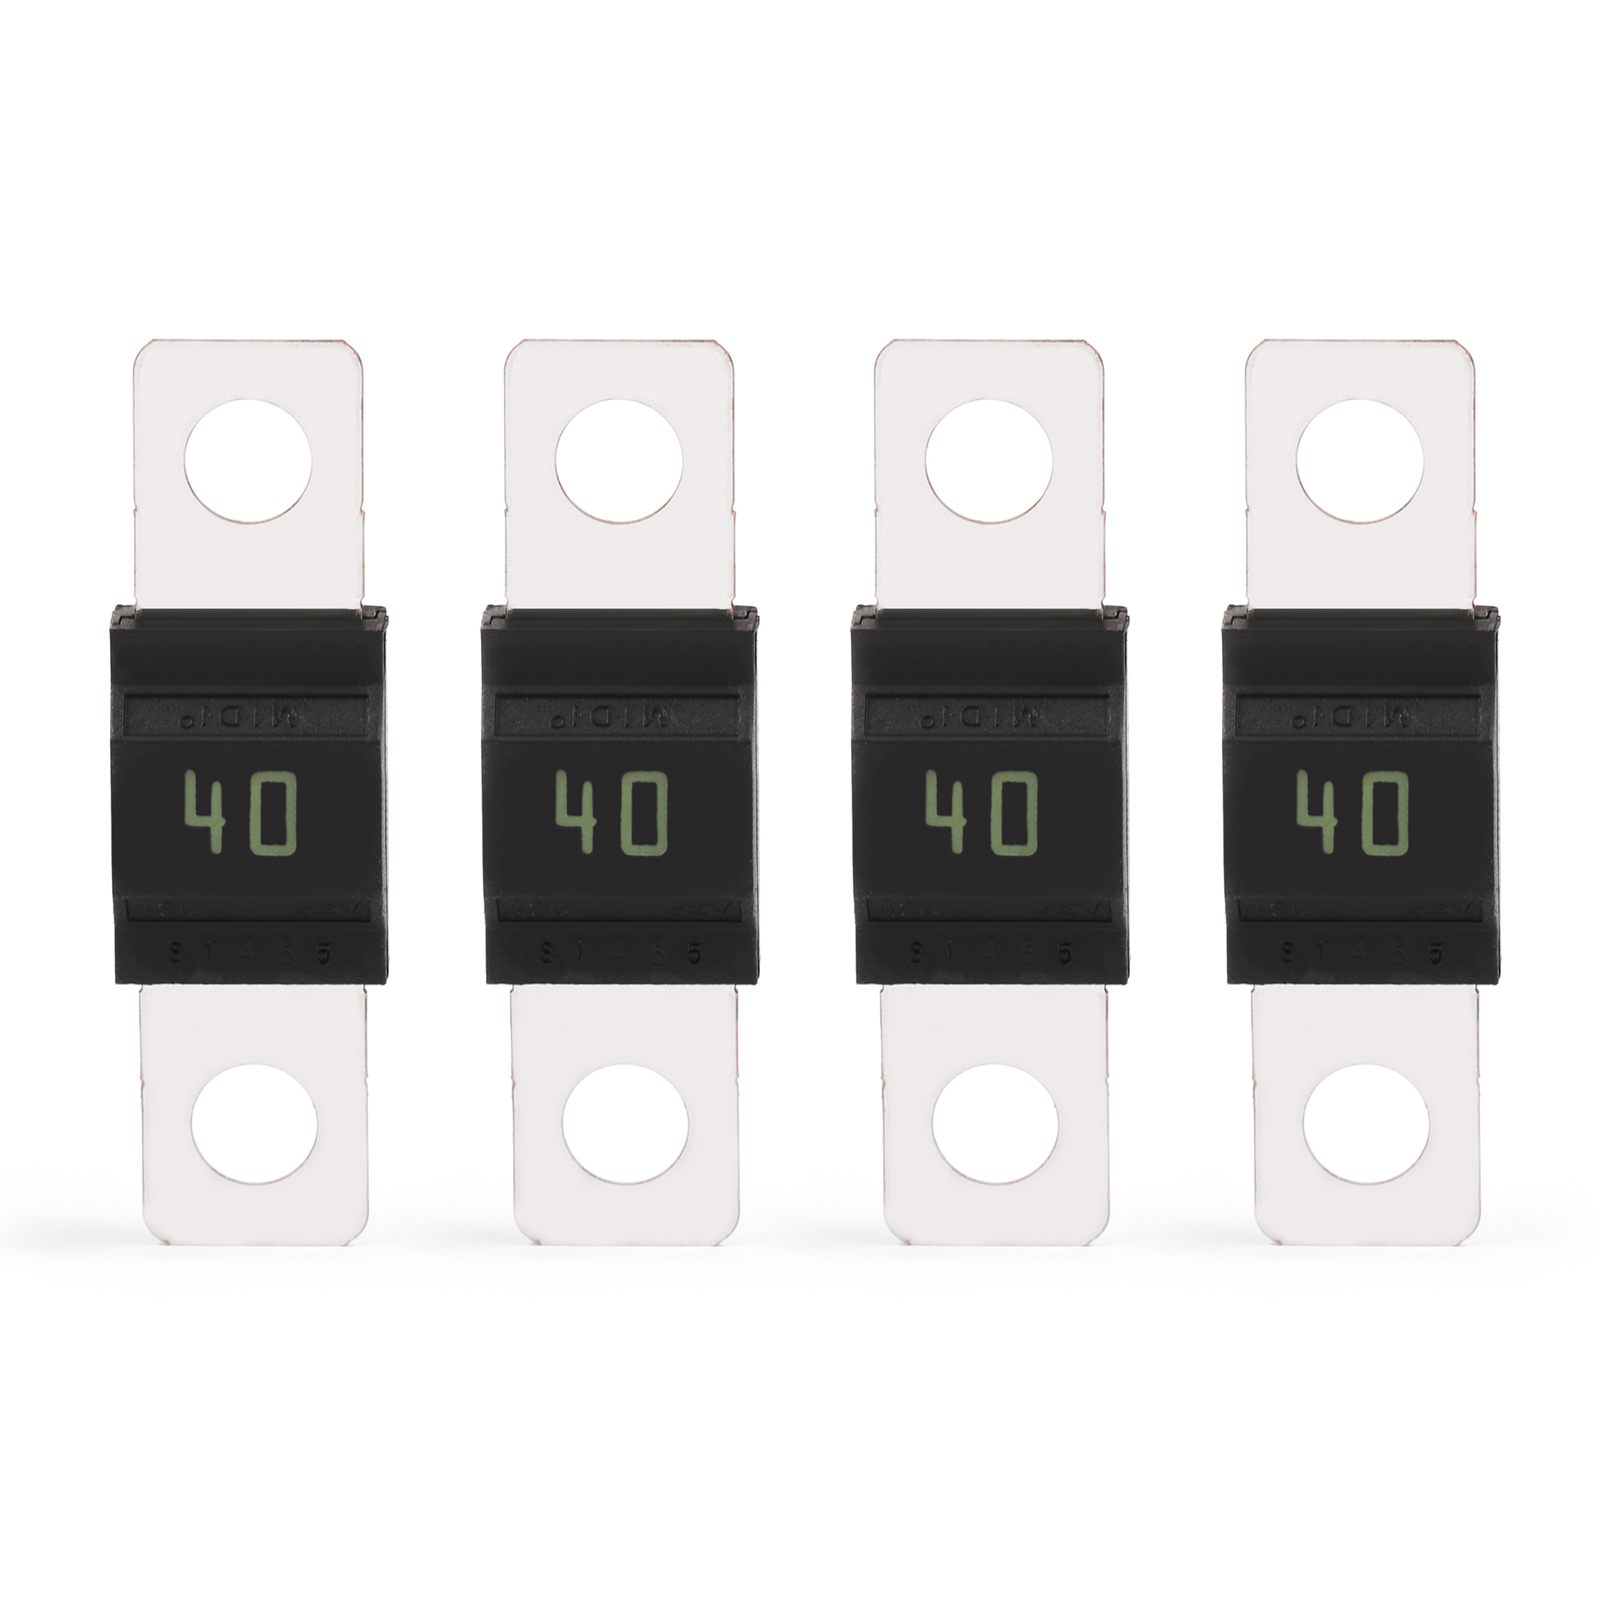 4pcs Midi Bolt Car Fuse Mini Ans Audio Power High Current Fuses Micro Block With Box Lug 100 Brand New And Quality Shape Colour Same As The Picture Show 1 Type 2 For Holder 3 Material Plastic Metal